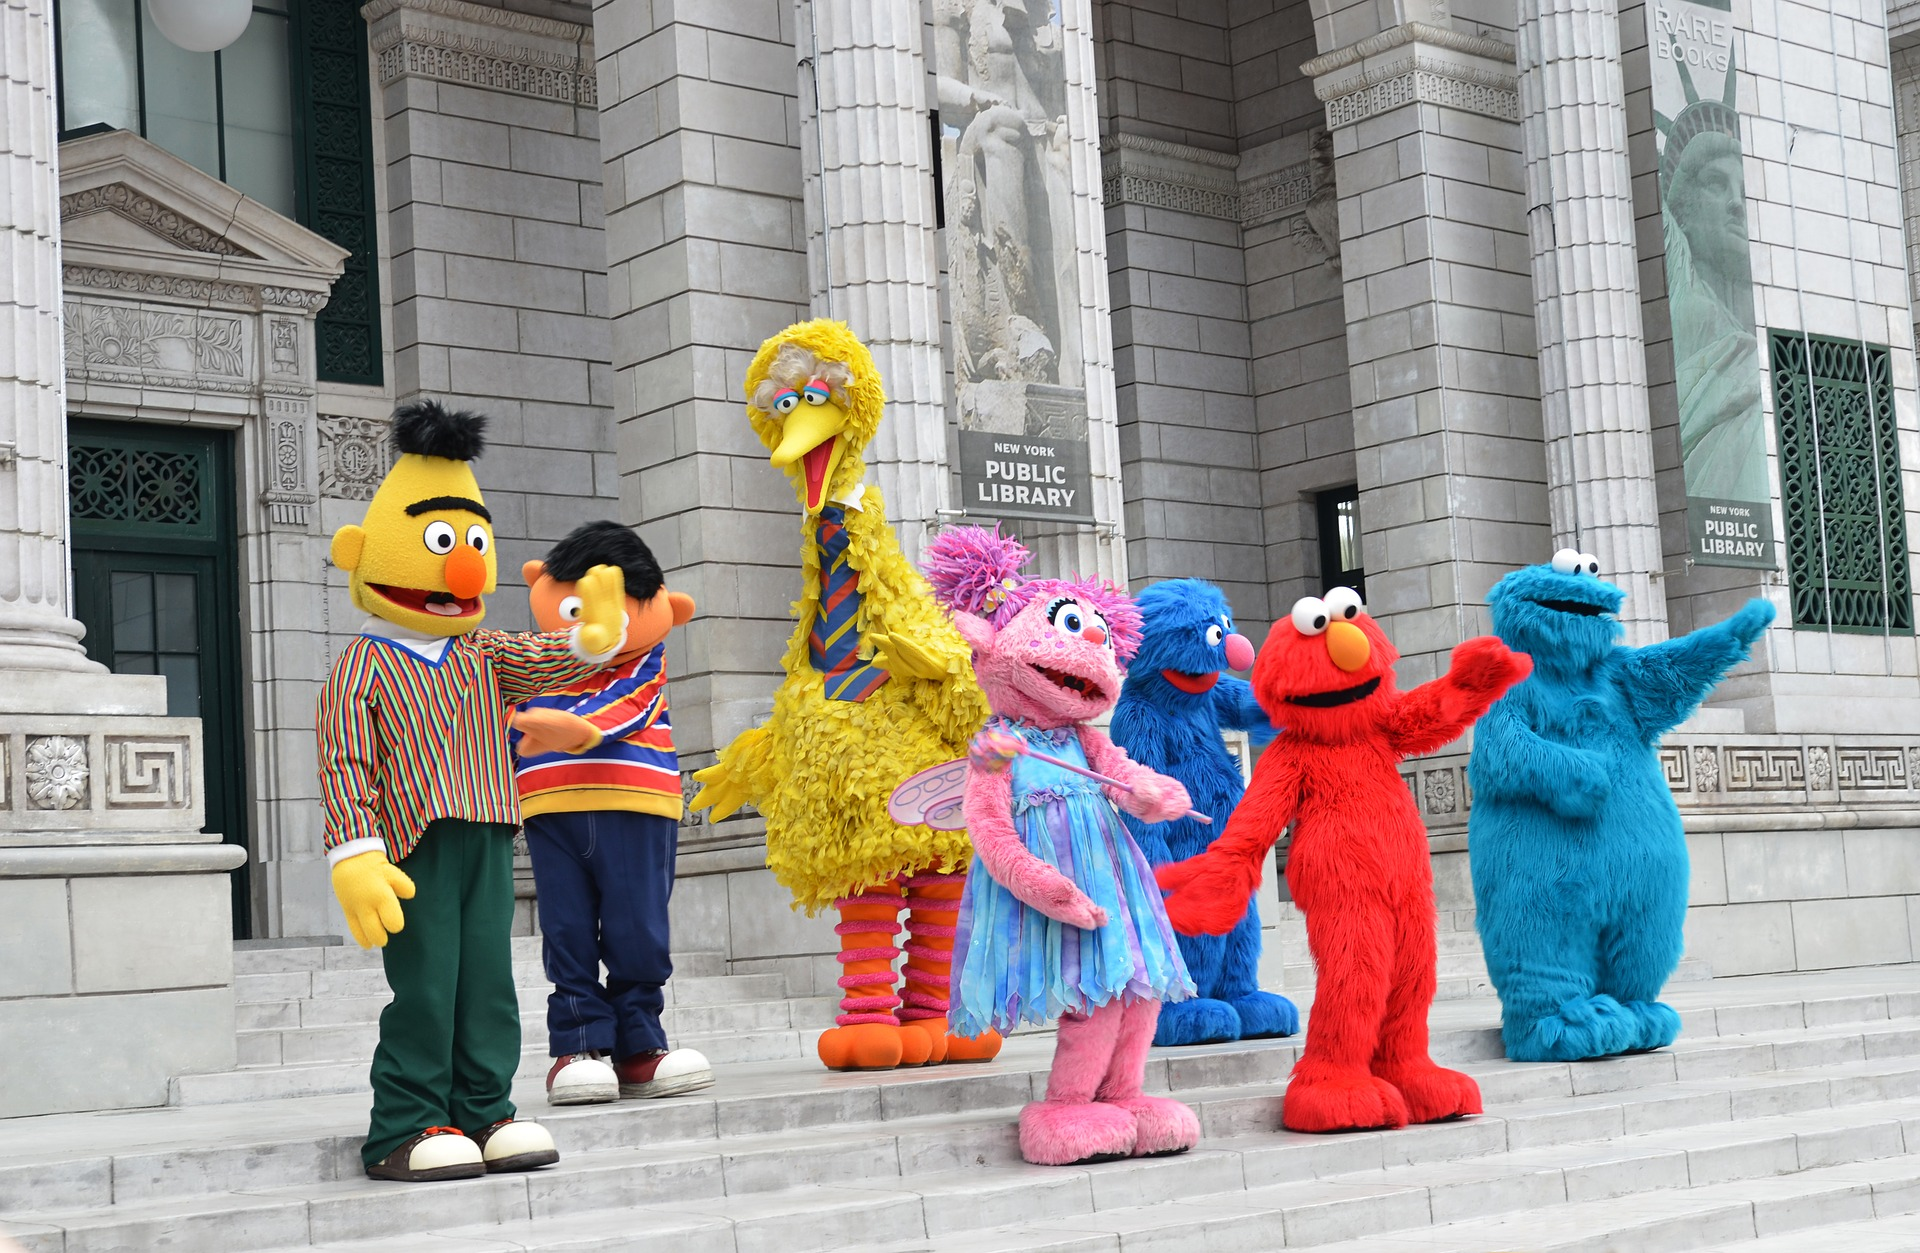 Many Sesame Street characters in a group.